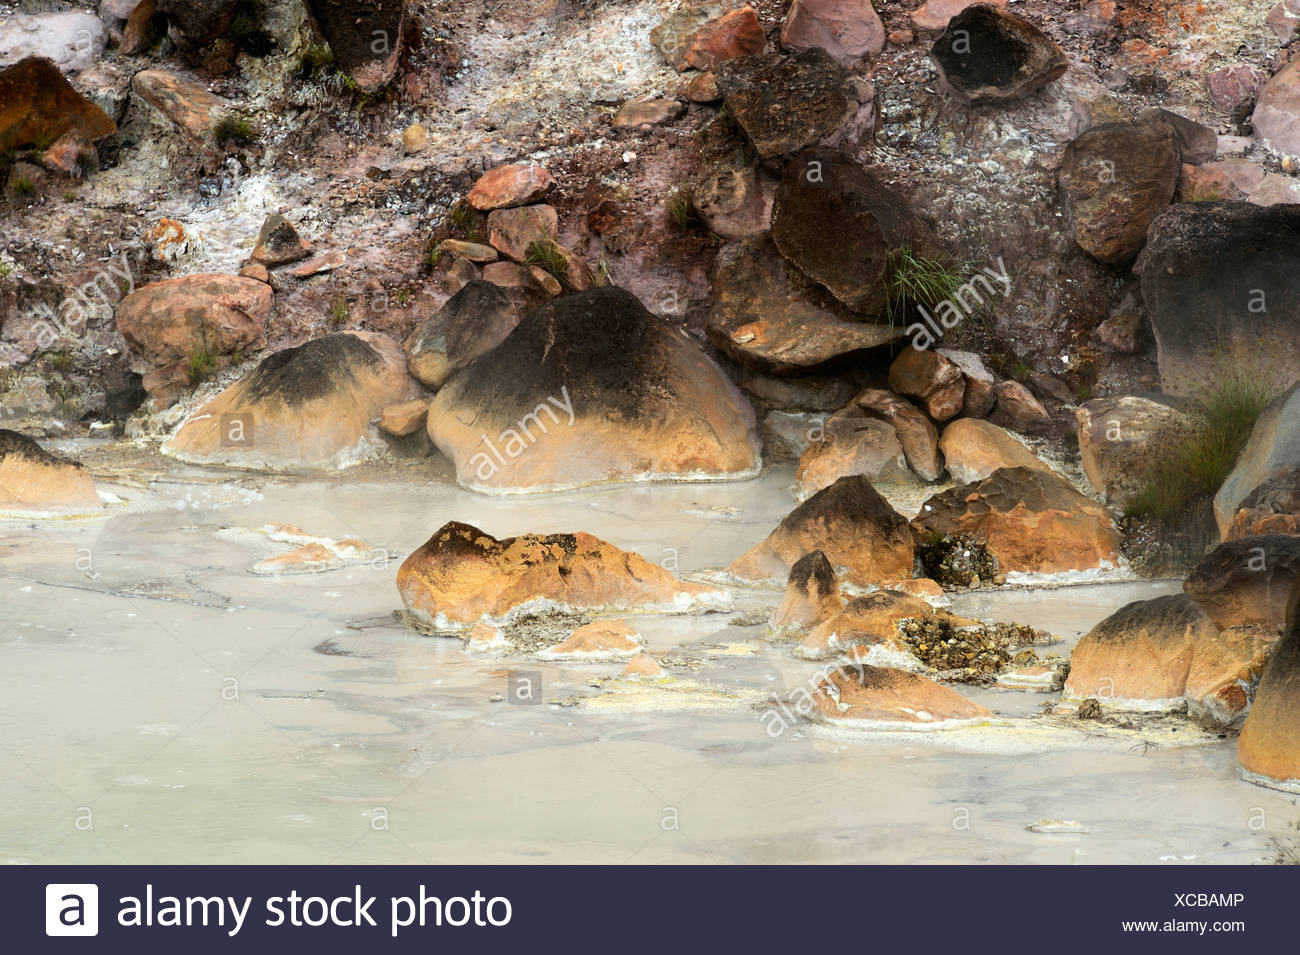 Hot mud springs, Rincon de la Vieja National Park, Guanacaste, Costa Rica, South America - Stock Image